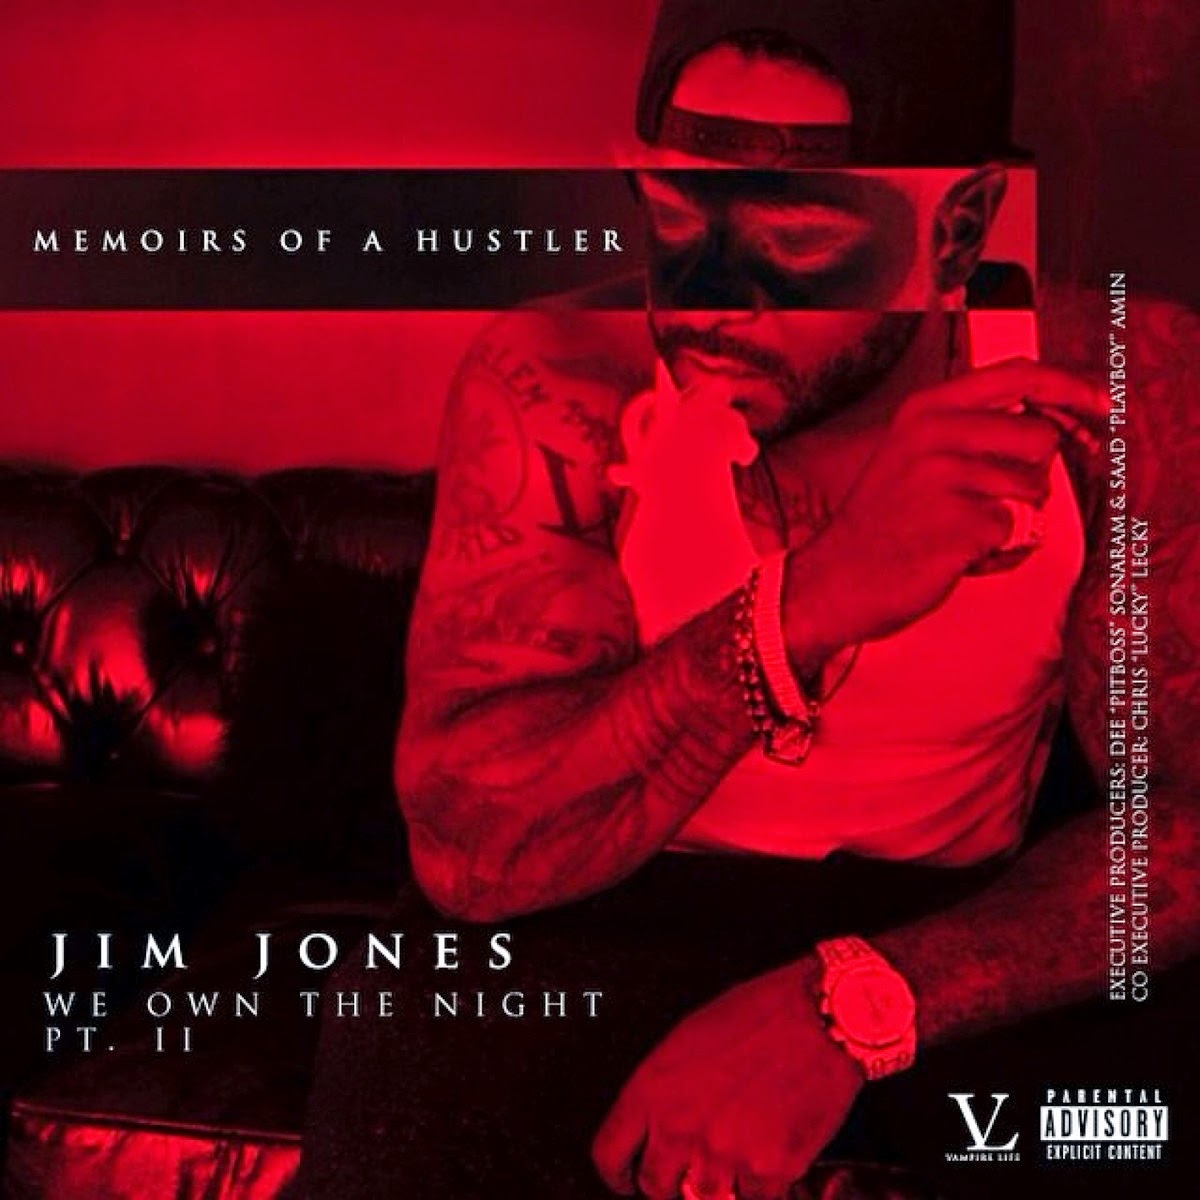 Jim Jones - We Own the Night, Pt. 2: Memoirs of a Hustler Cover